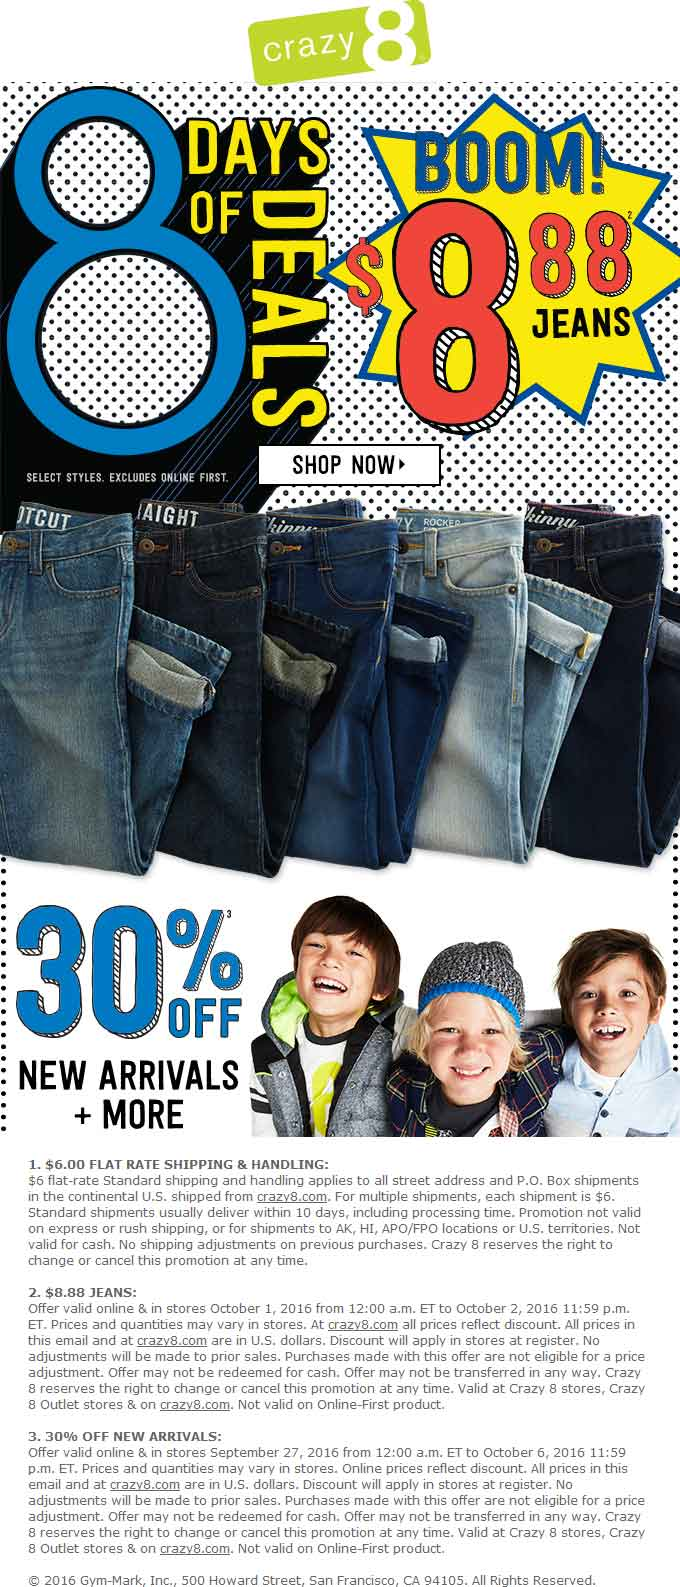 Crazy 8 Coupon April 2017 30% off new arrivals at Crazy 8 kidswear, ditto online